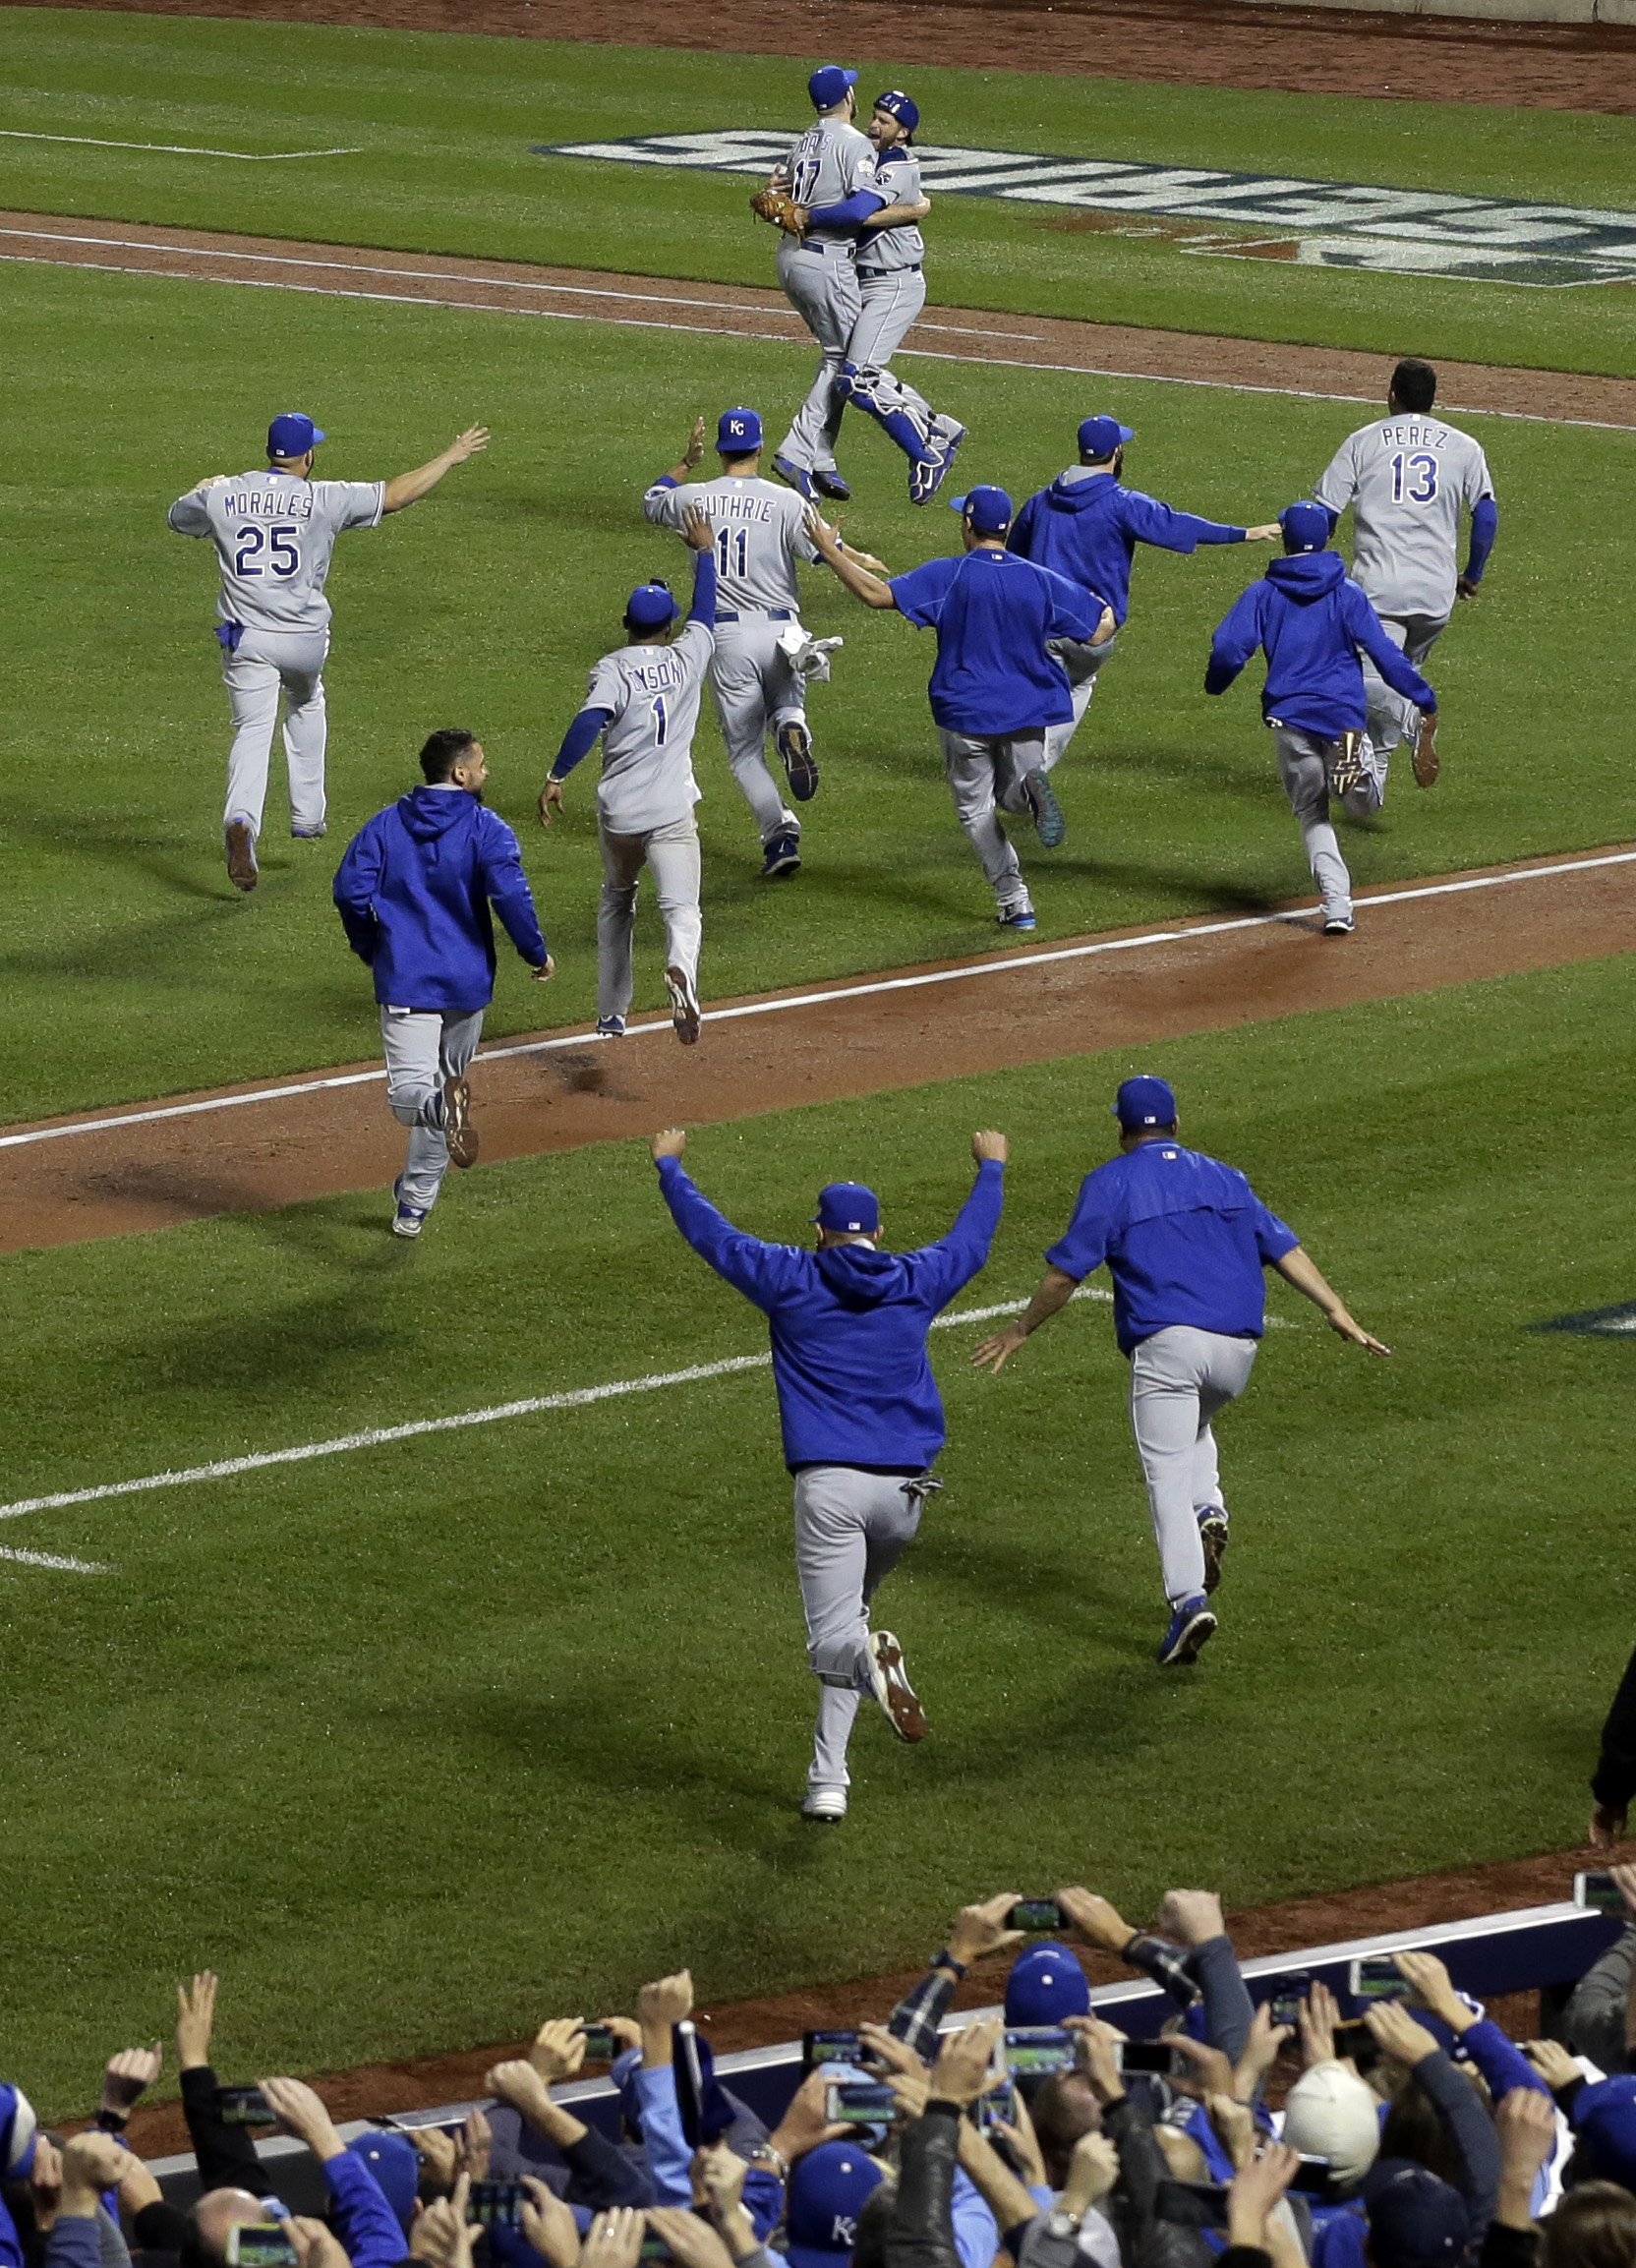 Member of the Kansas City Royals celebrates after Game 5 of the Major League Baseball World Series against the New York Mets Monday, Nov. 2, 2015, in New York. The Royals won 7-2 to win the series. (AP Photo/Julie Jacobson)